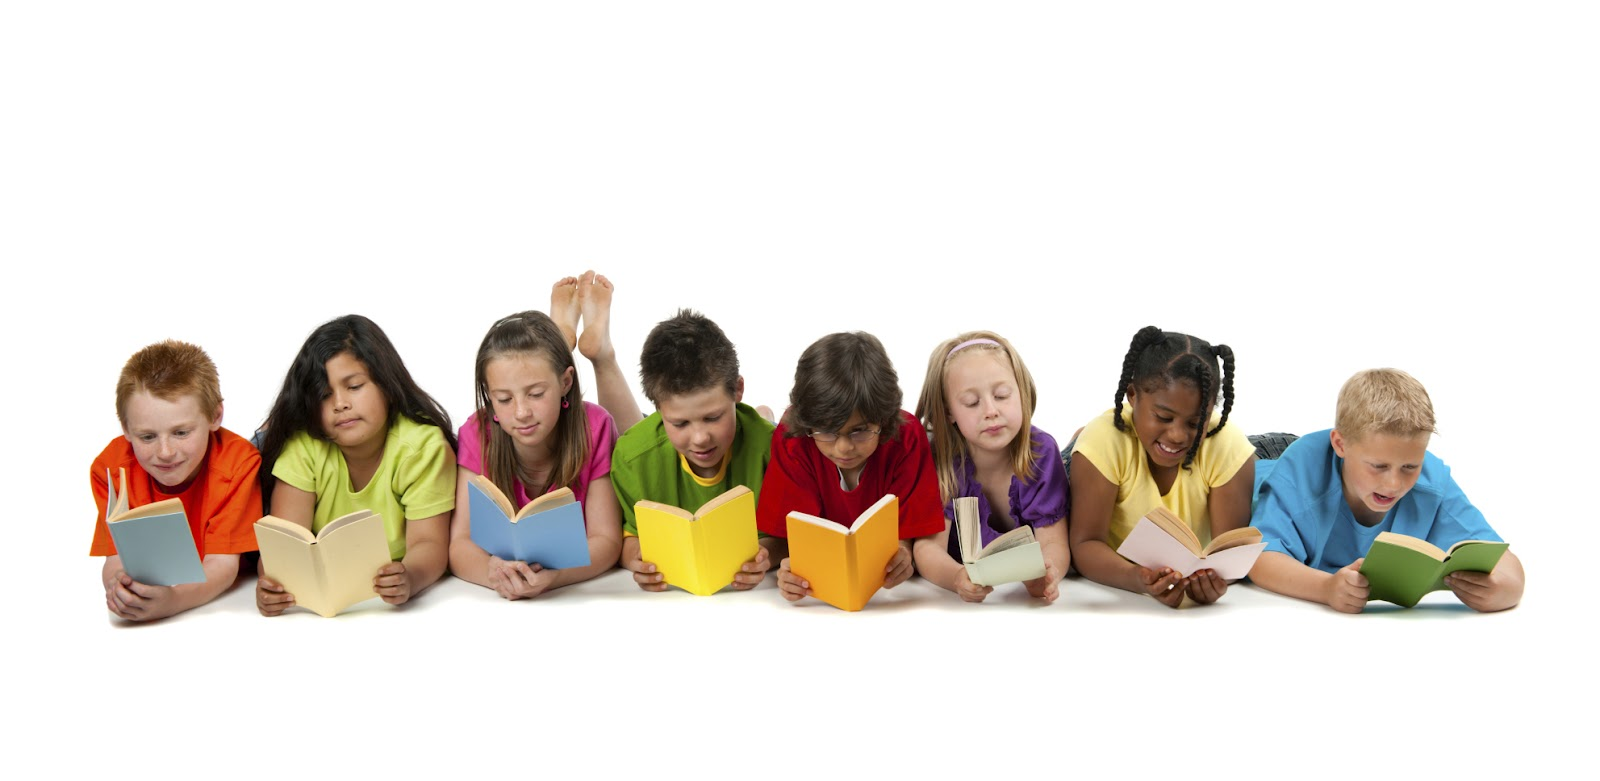 Worksheet Kids Learning How To Read children learning reading amazing program parents love teach kids not tests webin